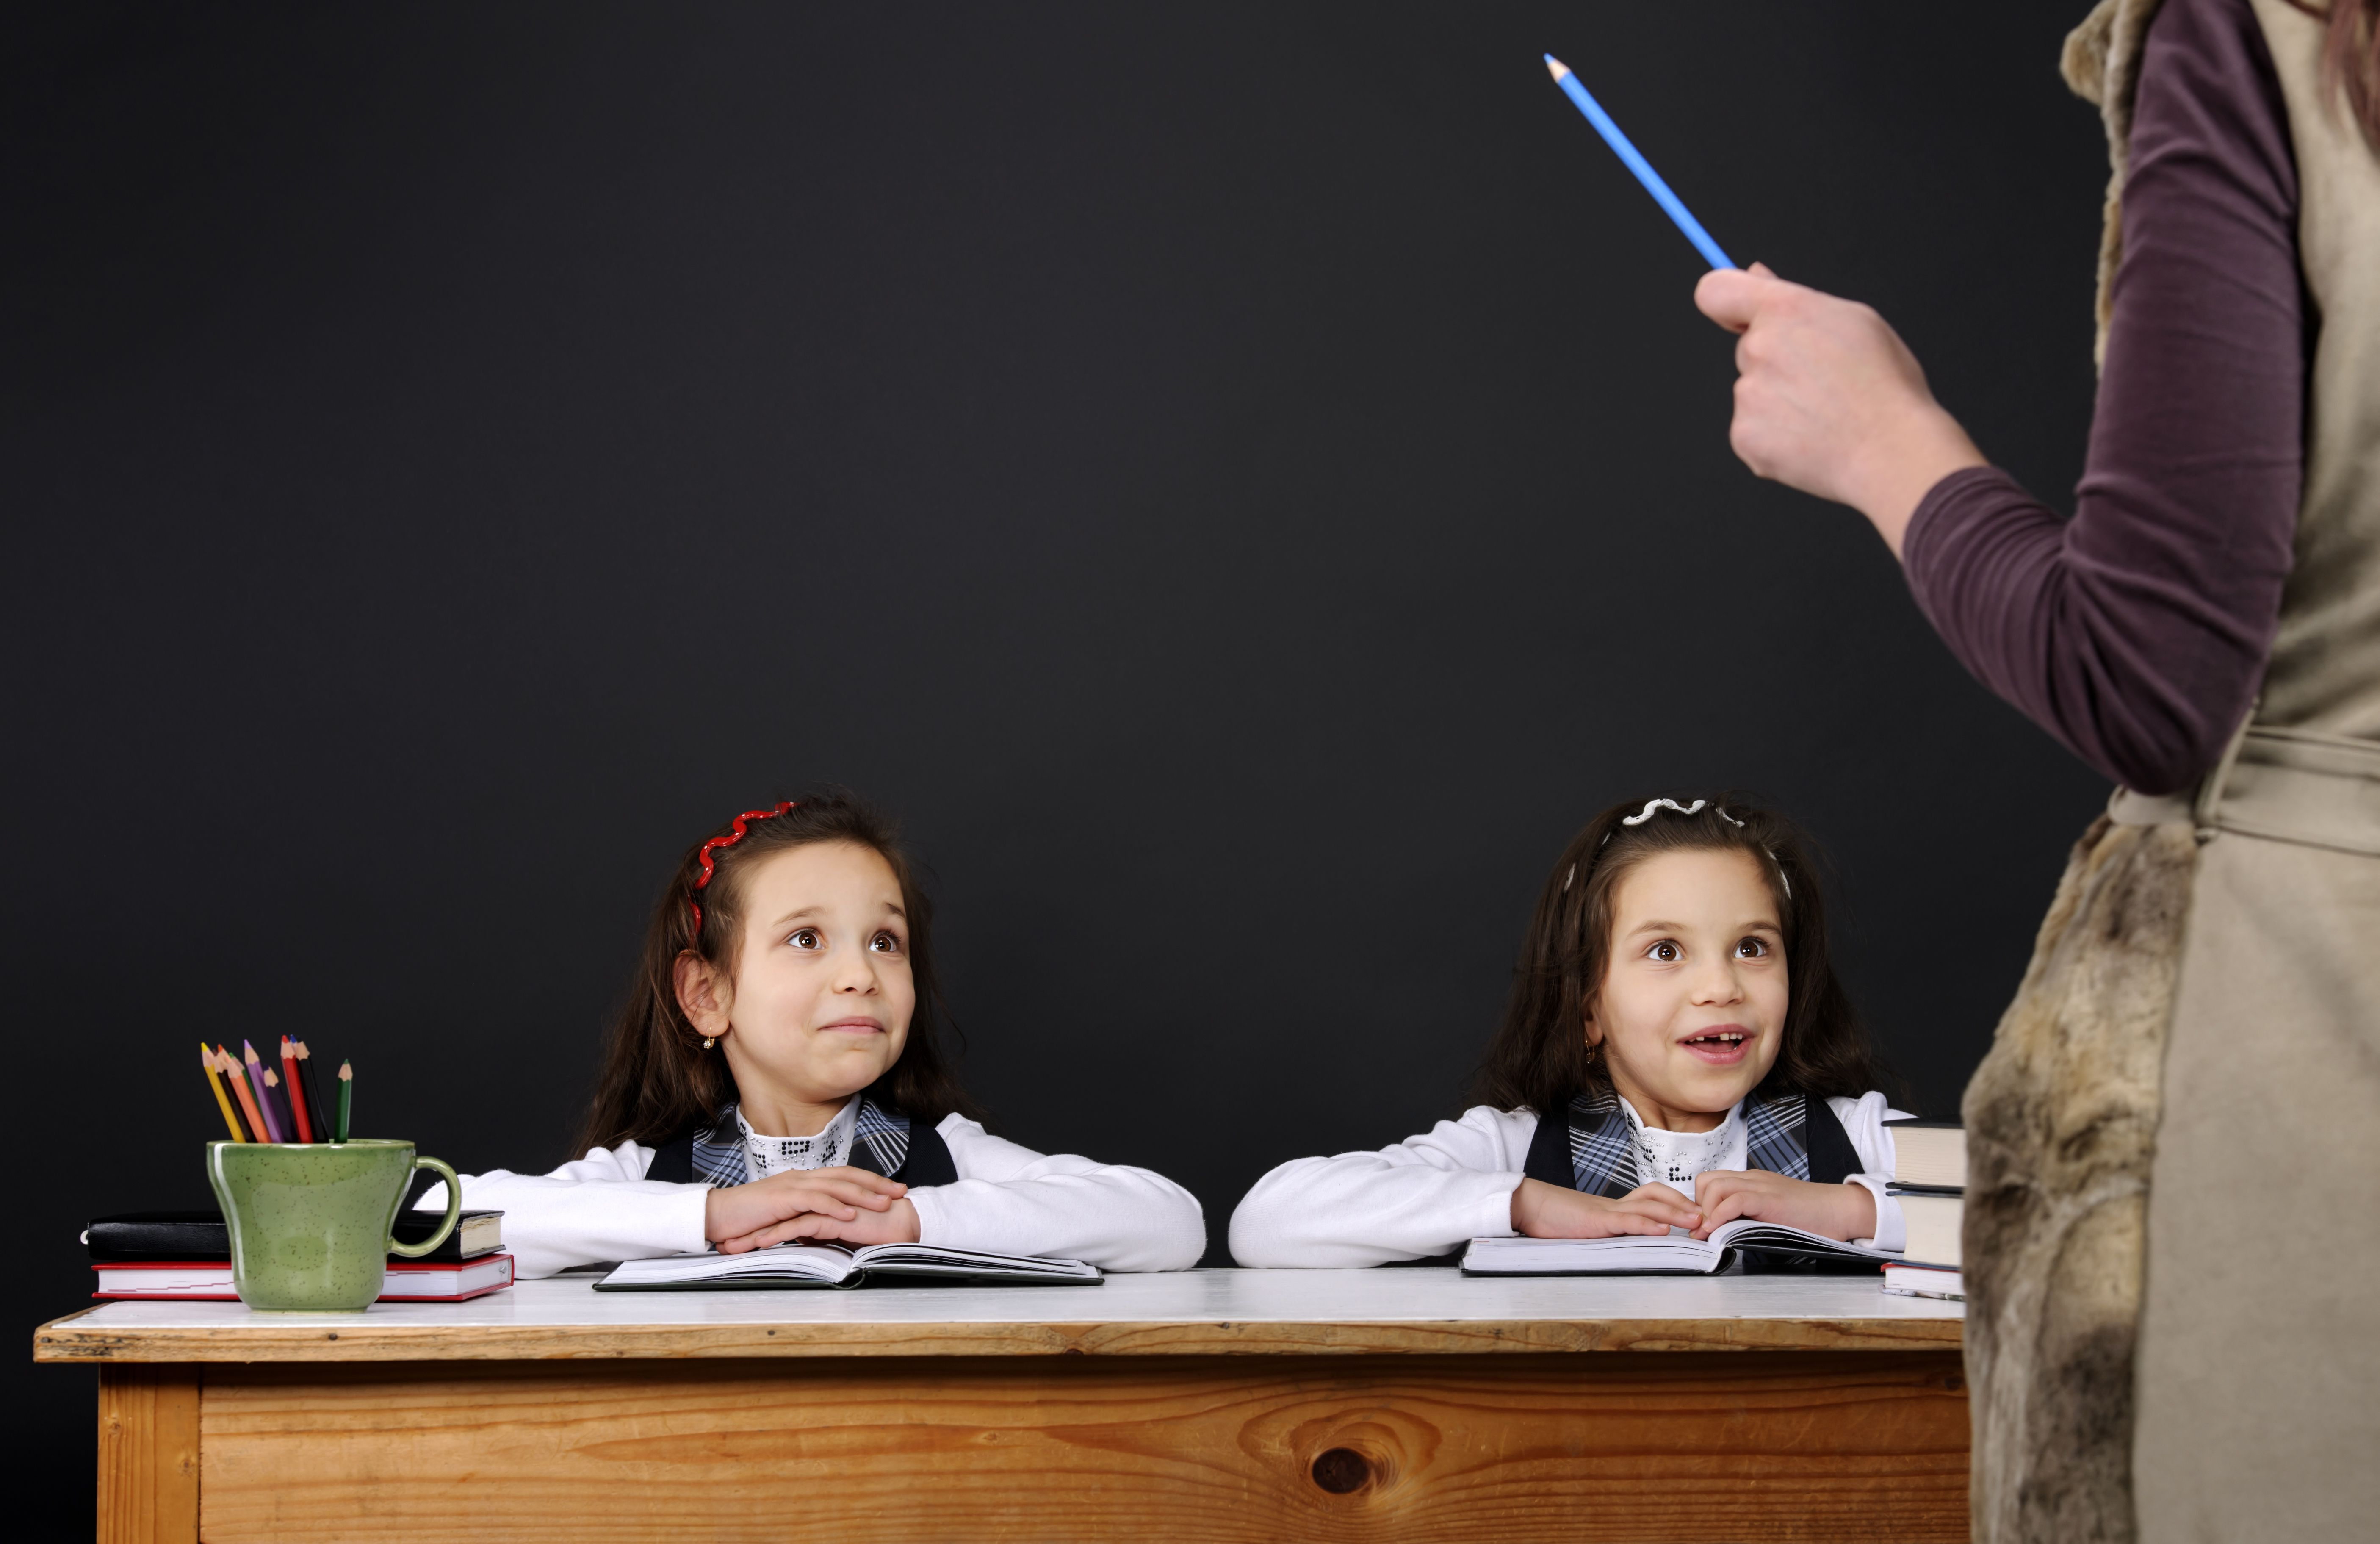 10 Reasons to Keep Twins Together in the Same Class